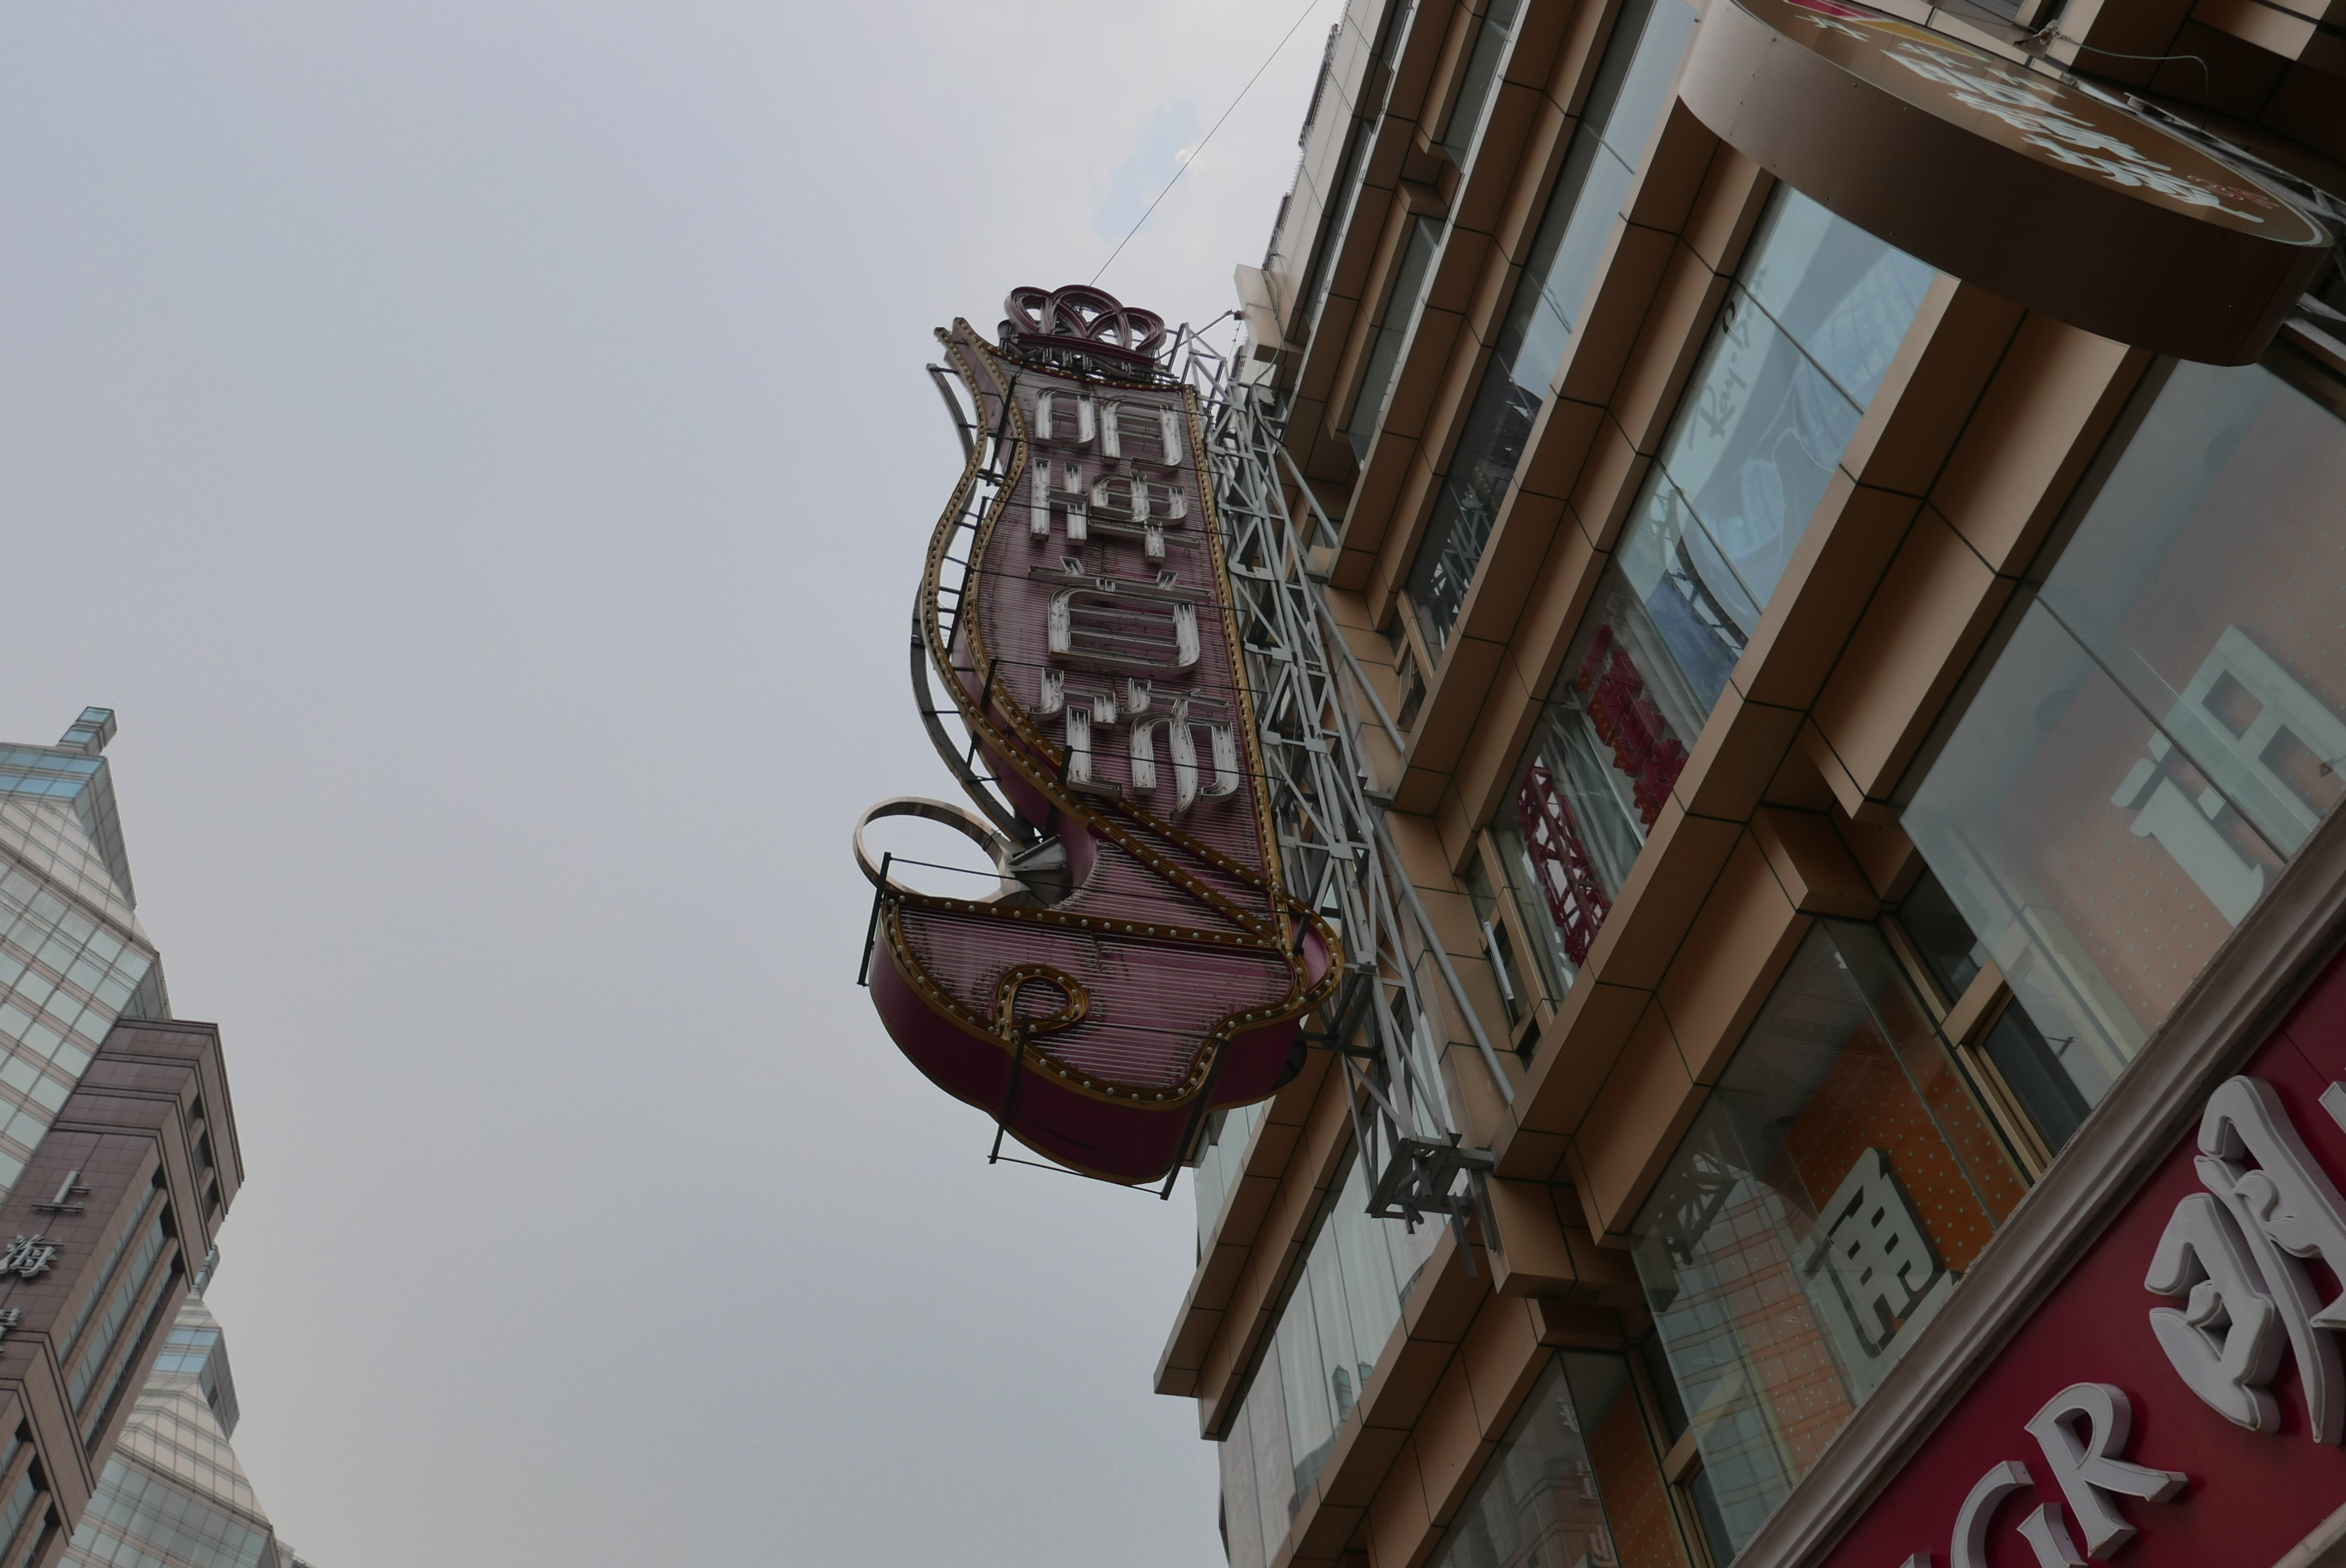 Dormant neon on Nanjing Road, photo by Charles Britton